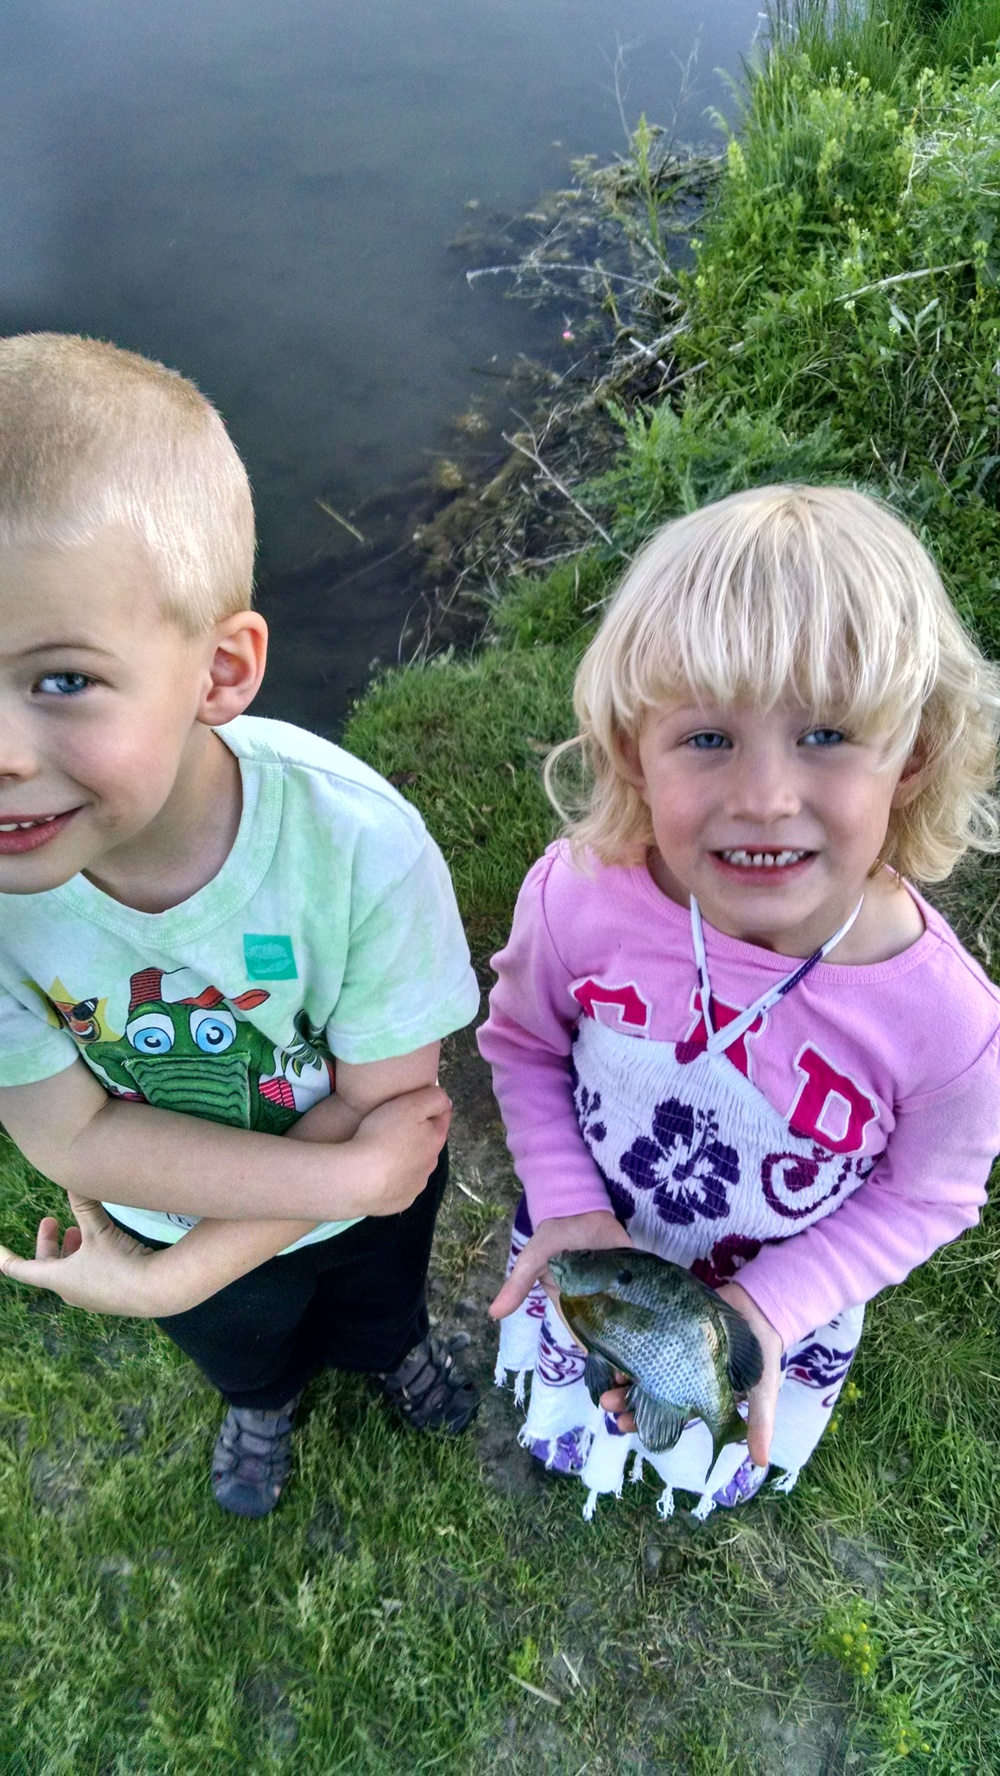 The kids got some great fishing in before the heat set in on us.